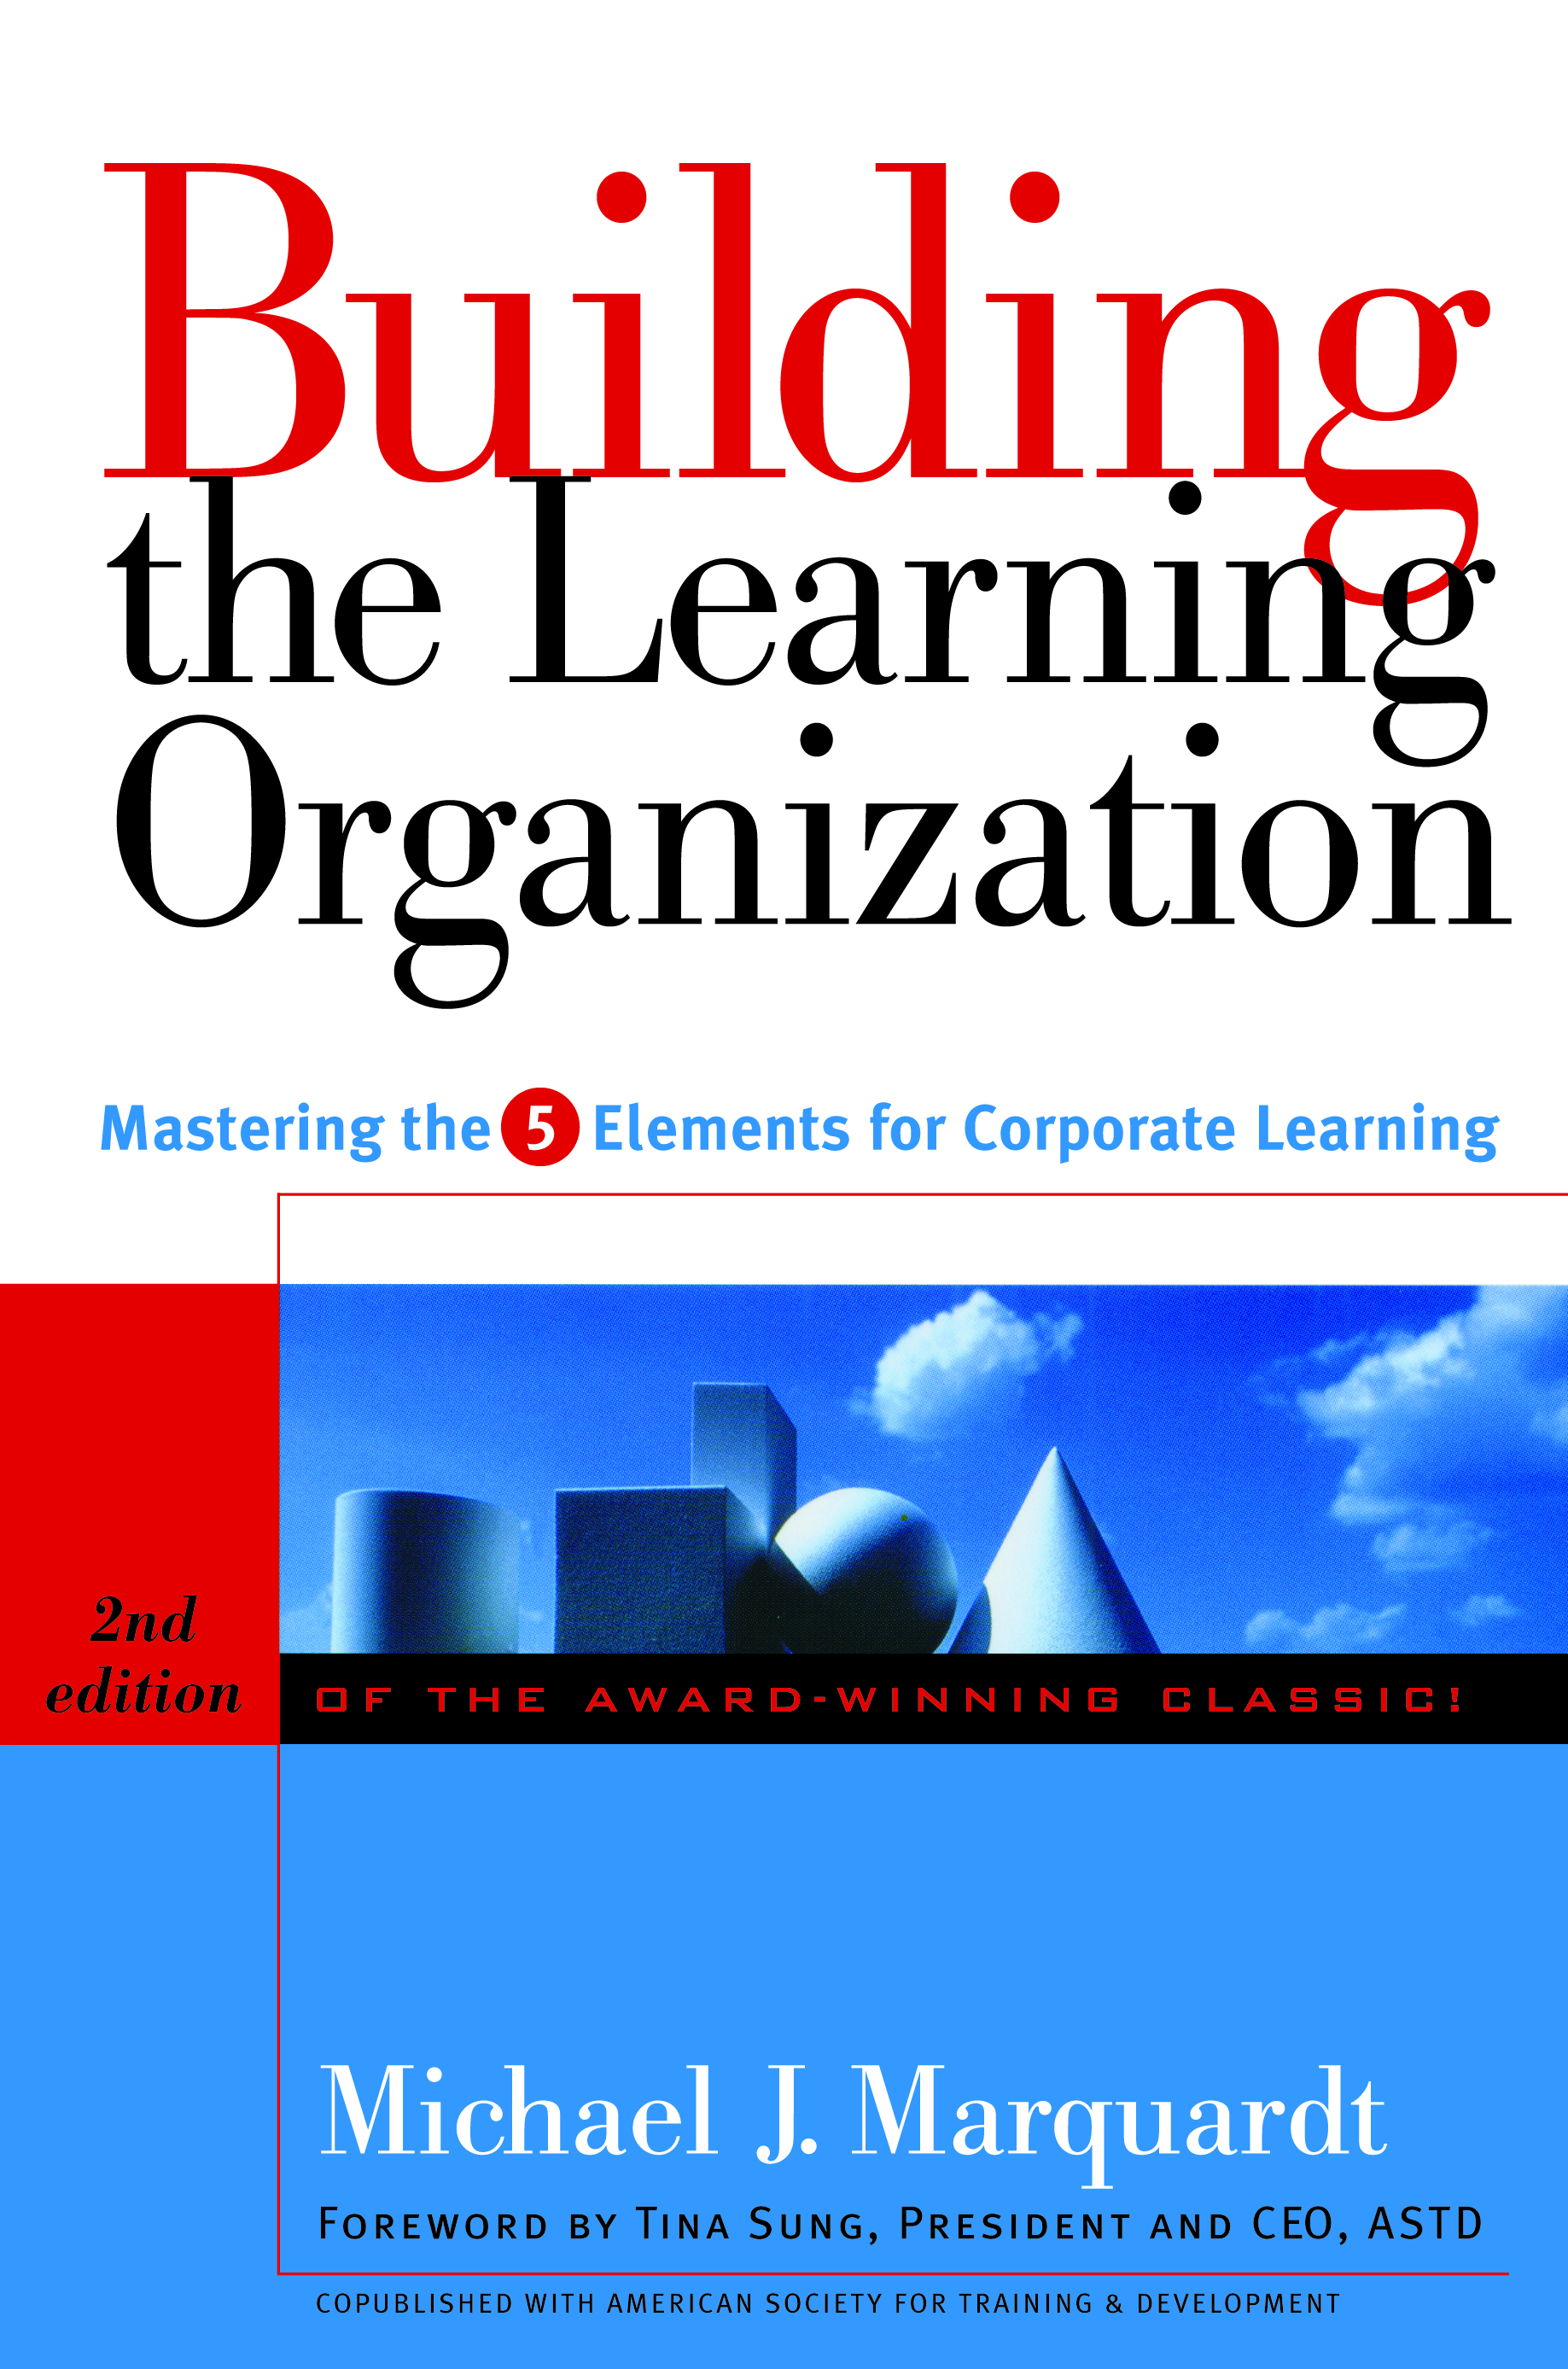 Building the Learning Organization 2e hi-res.jpg